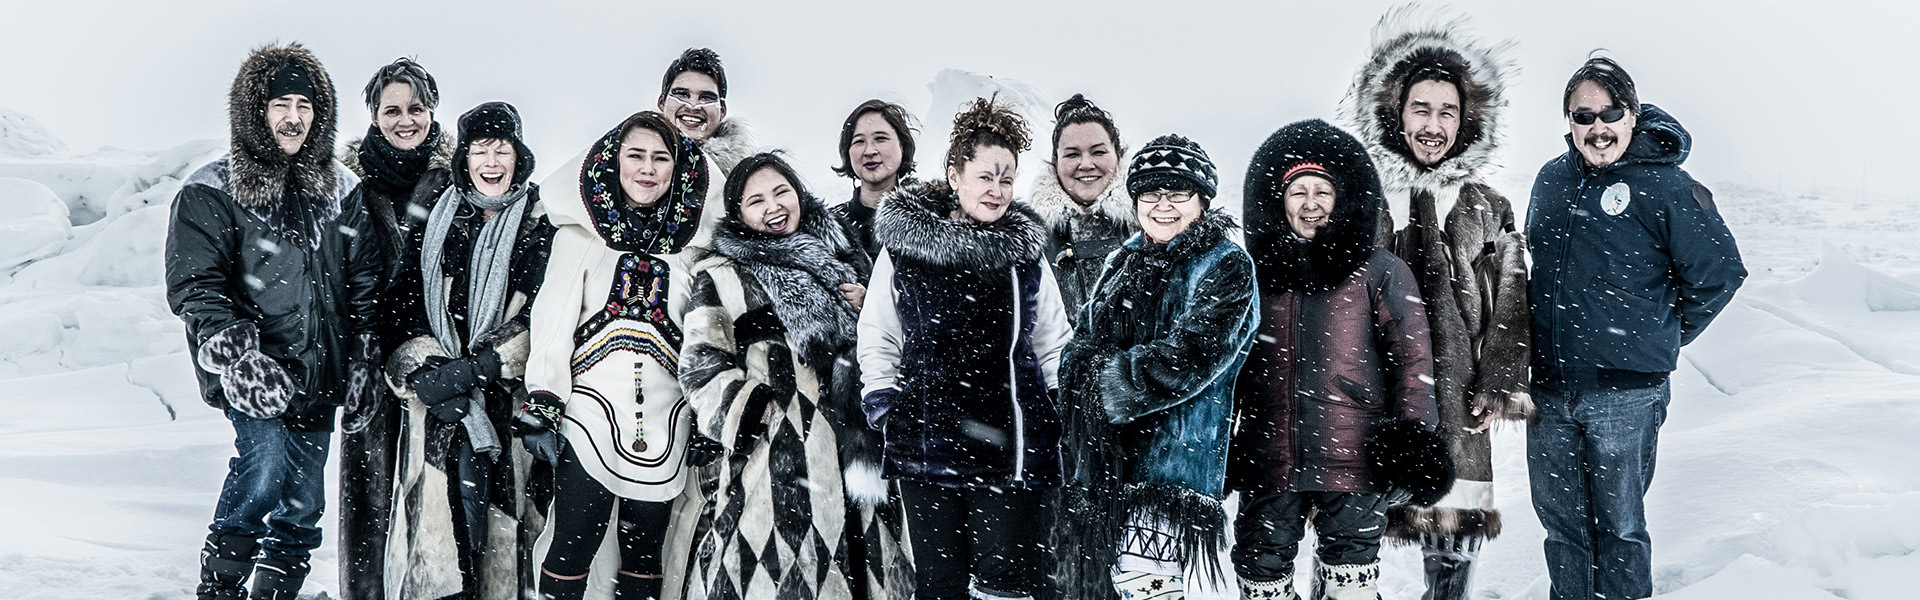 A dozen members of the Kiviuq Returns cast pose against a snowy backdrop.